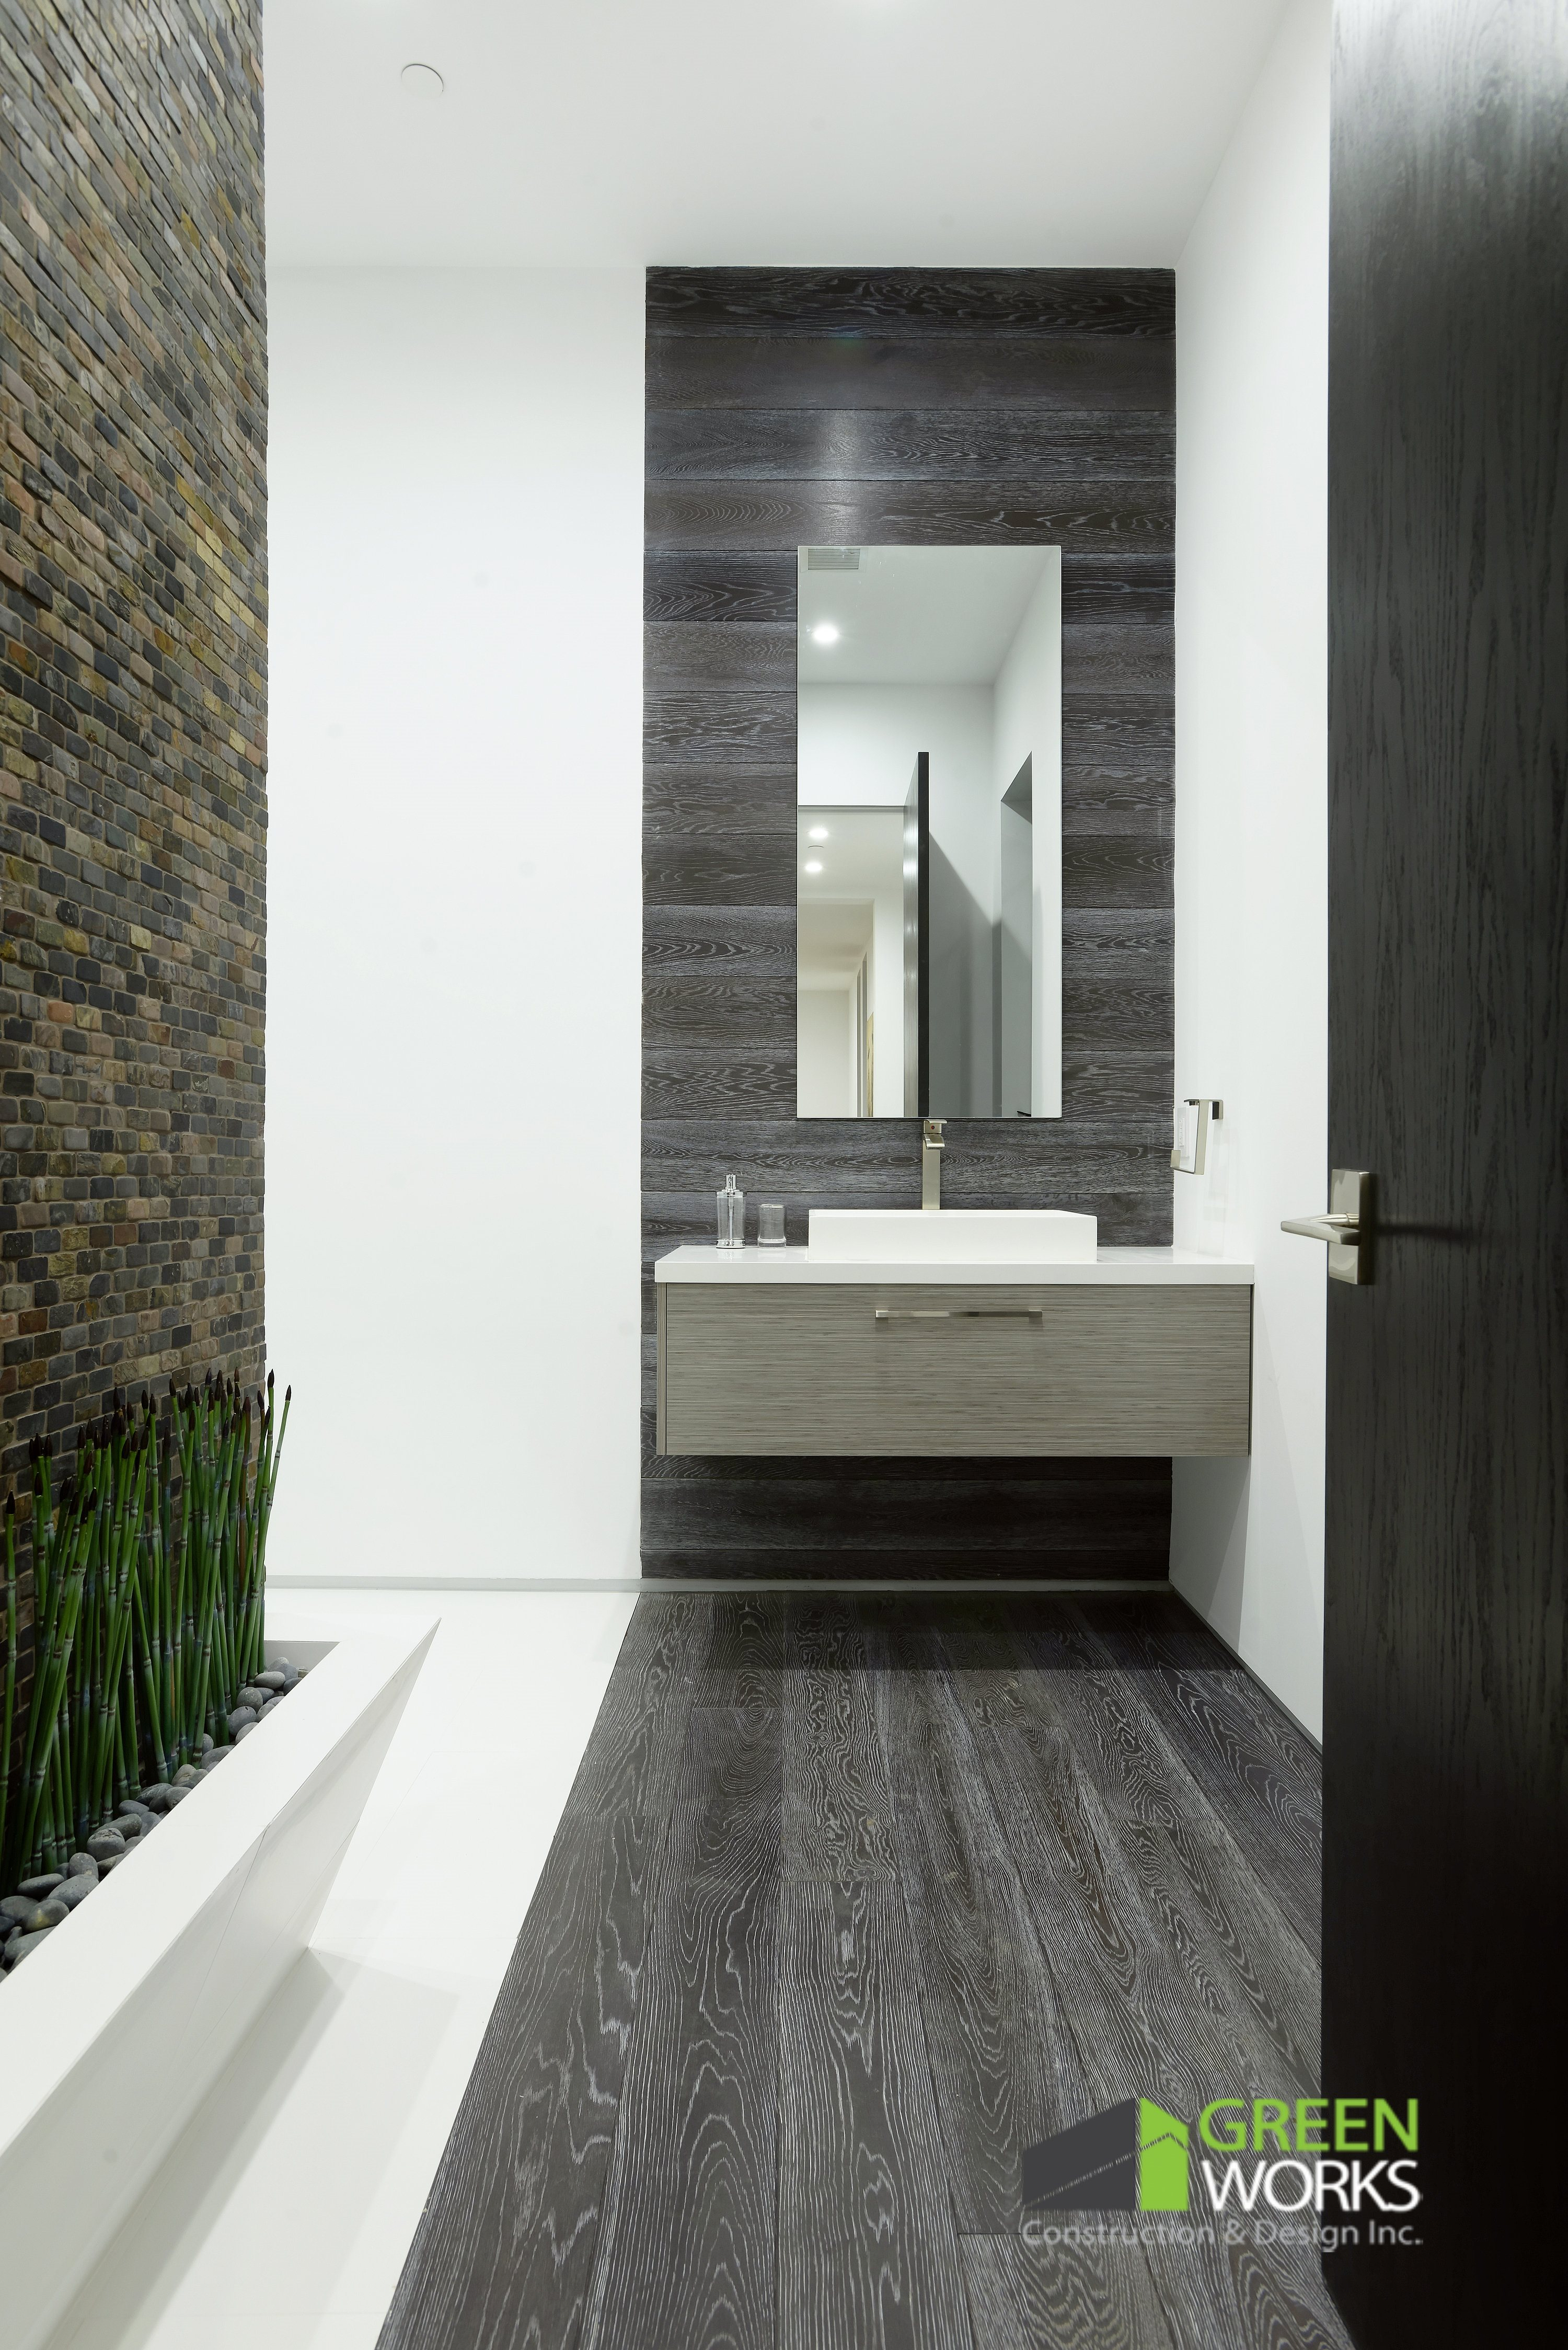 How long does bathroom remodeling take greenworks construction How long does a bathroom renovation take